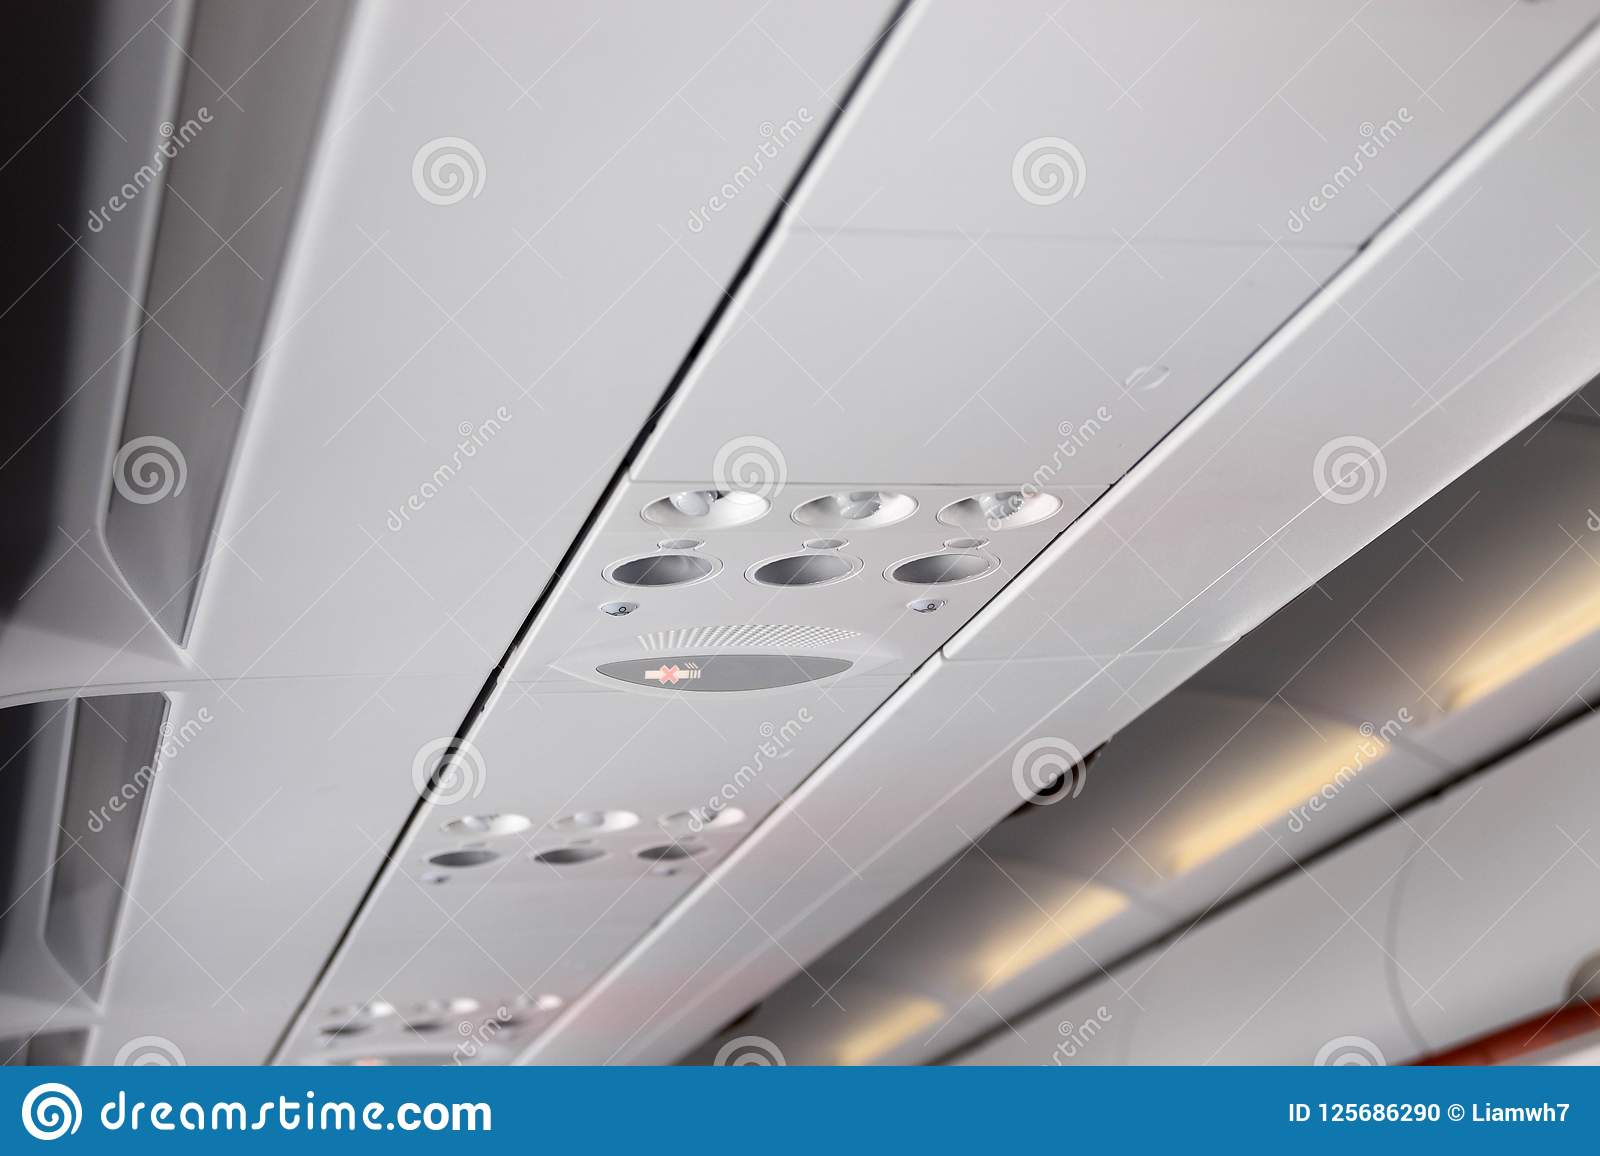 air plane air conditioner cold light stock photo image of interior